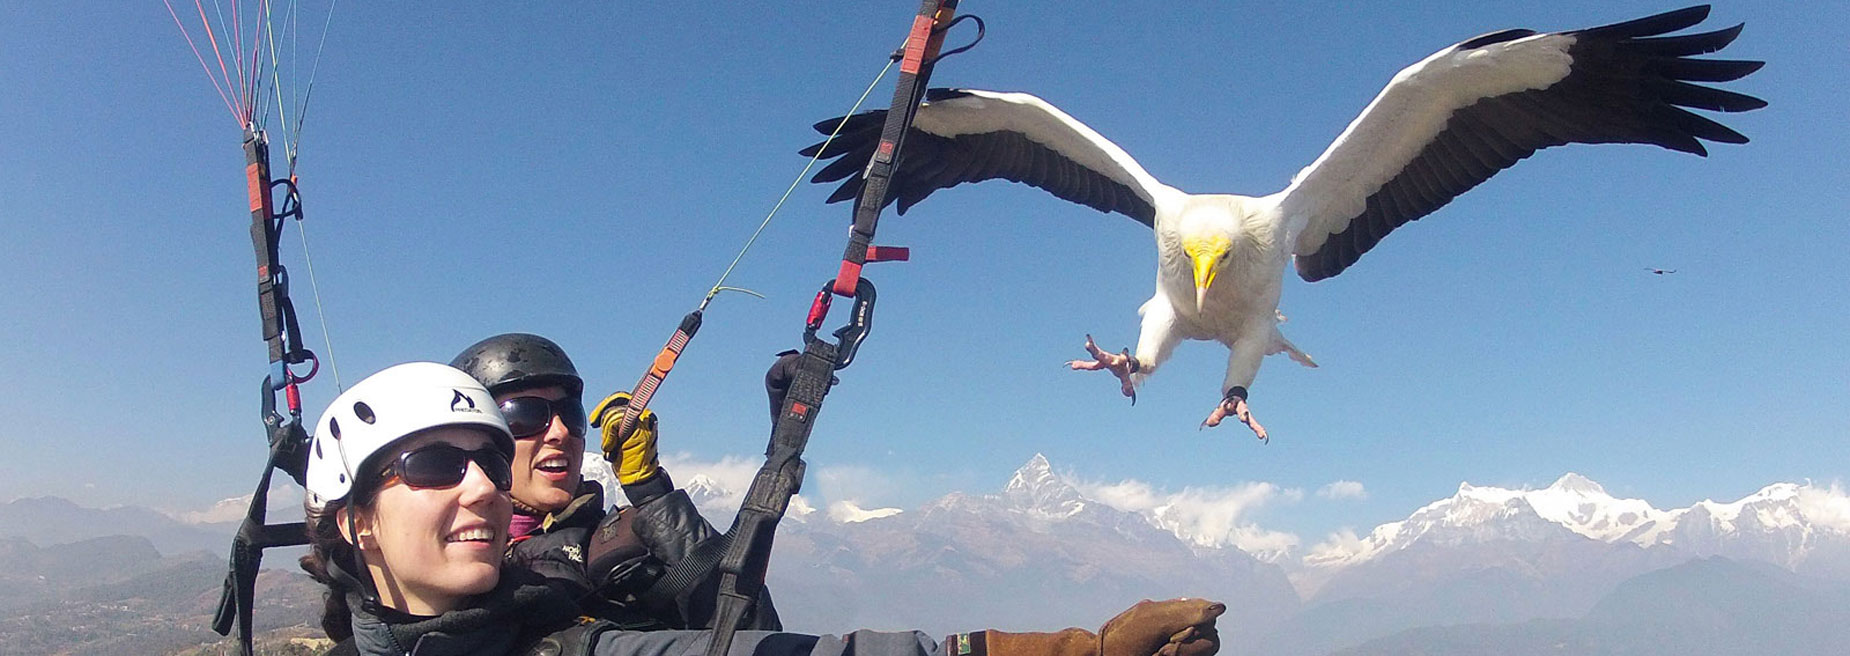 Paragliding - The Ultimate flying Experience in Nepal